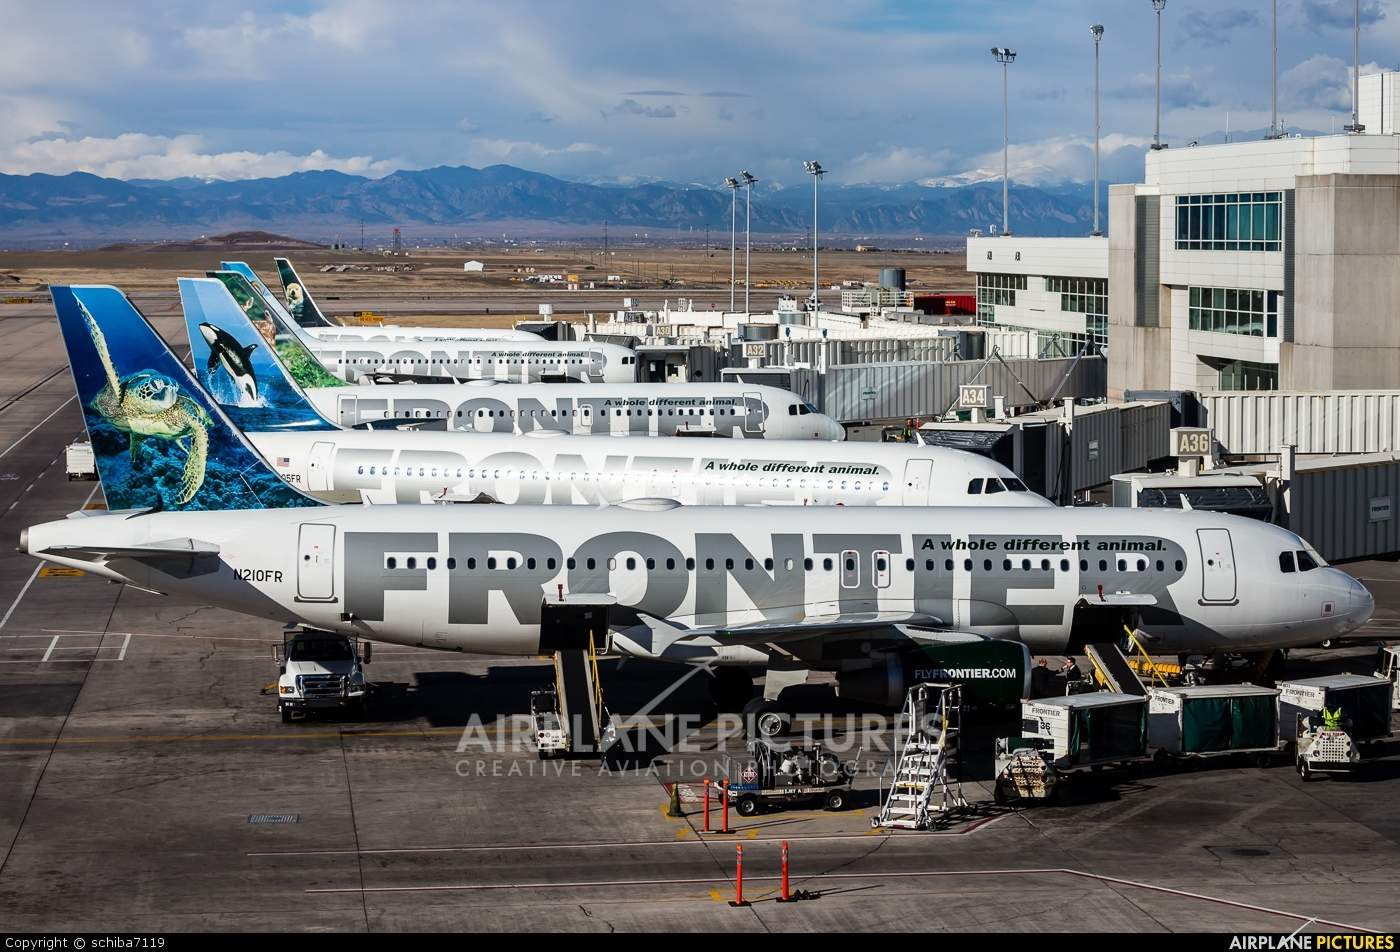 Female pilots file discrimination complaint towards Frontier because of breast pumping